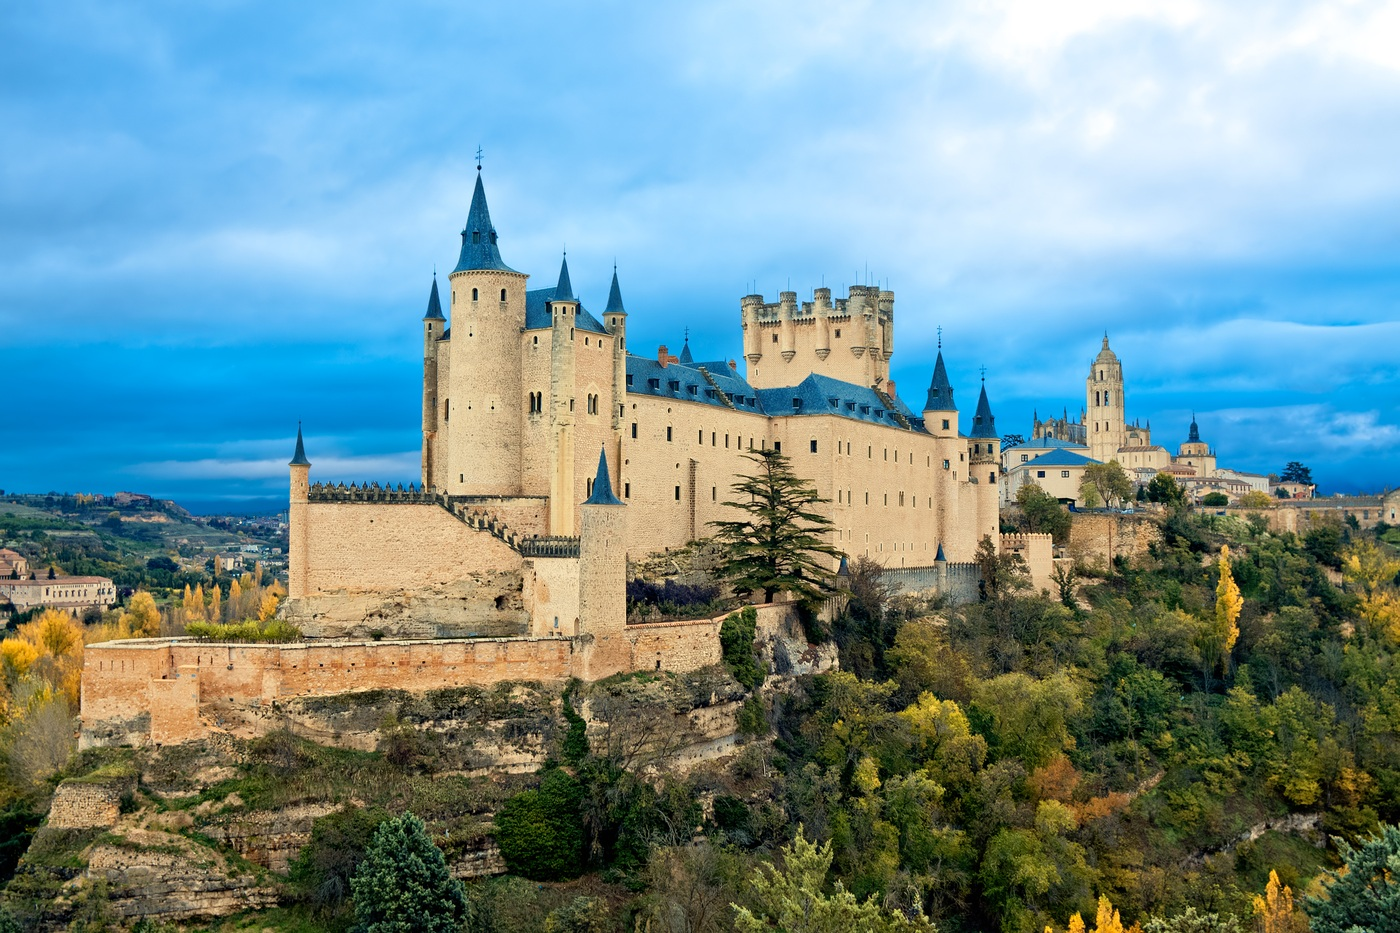 Castle 20 travel bucket list ideas to do before 40 20 Travel Bucket List Ideas To do before 40 visit a castle d888